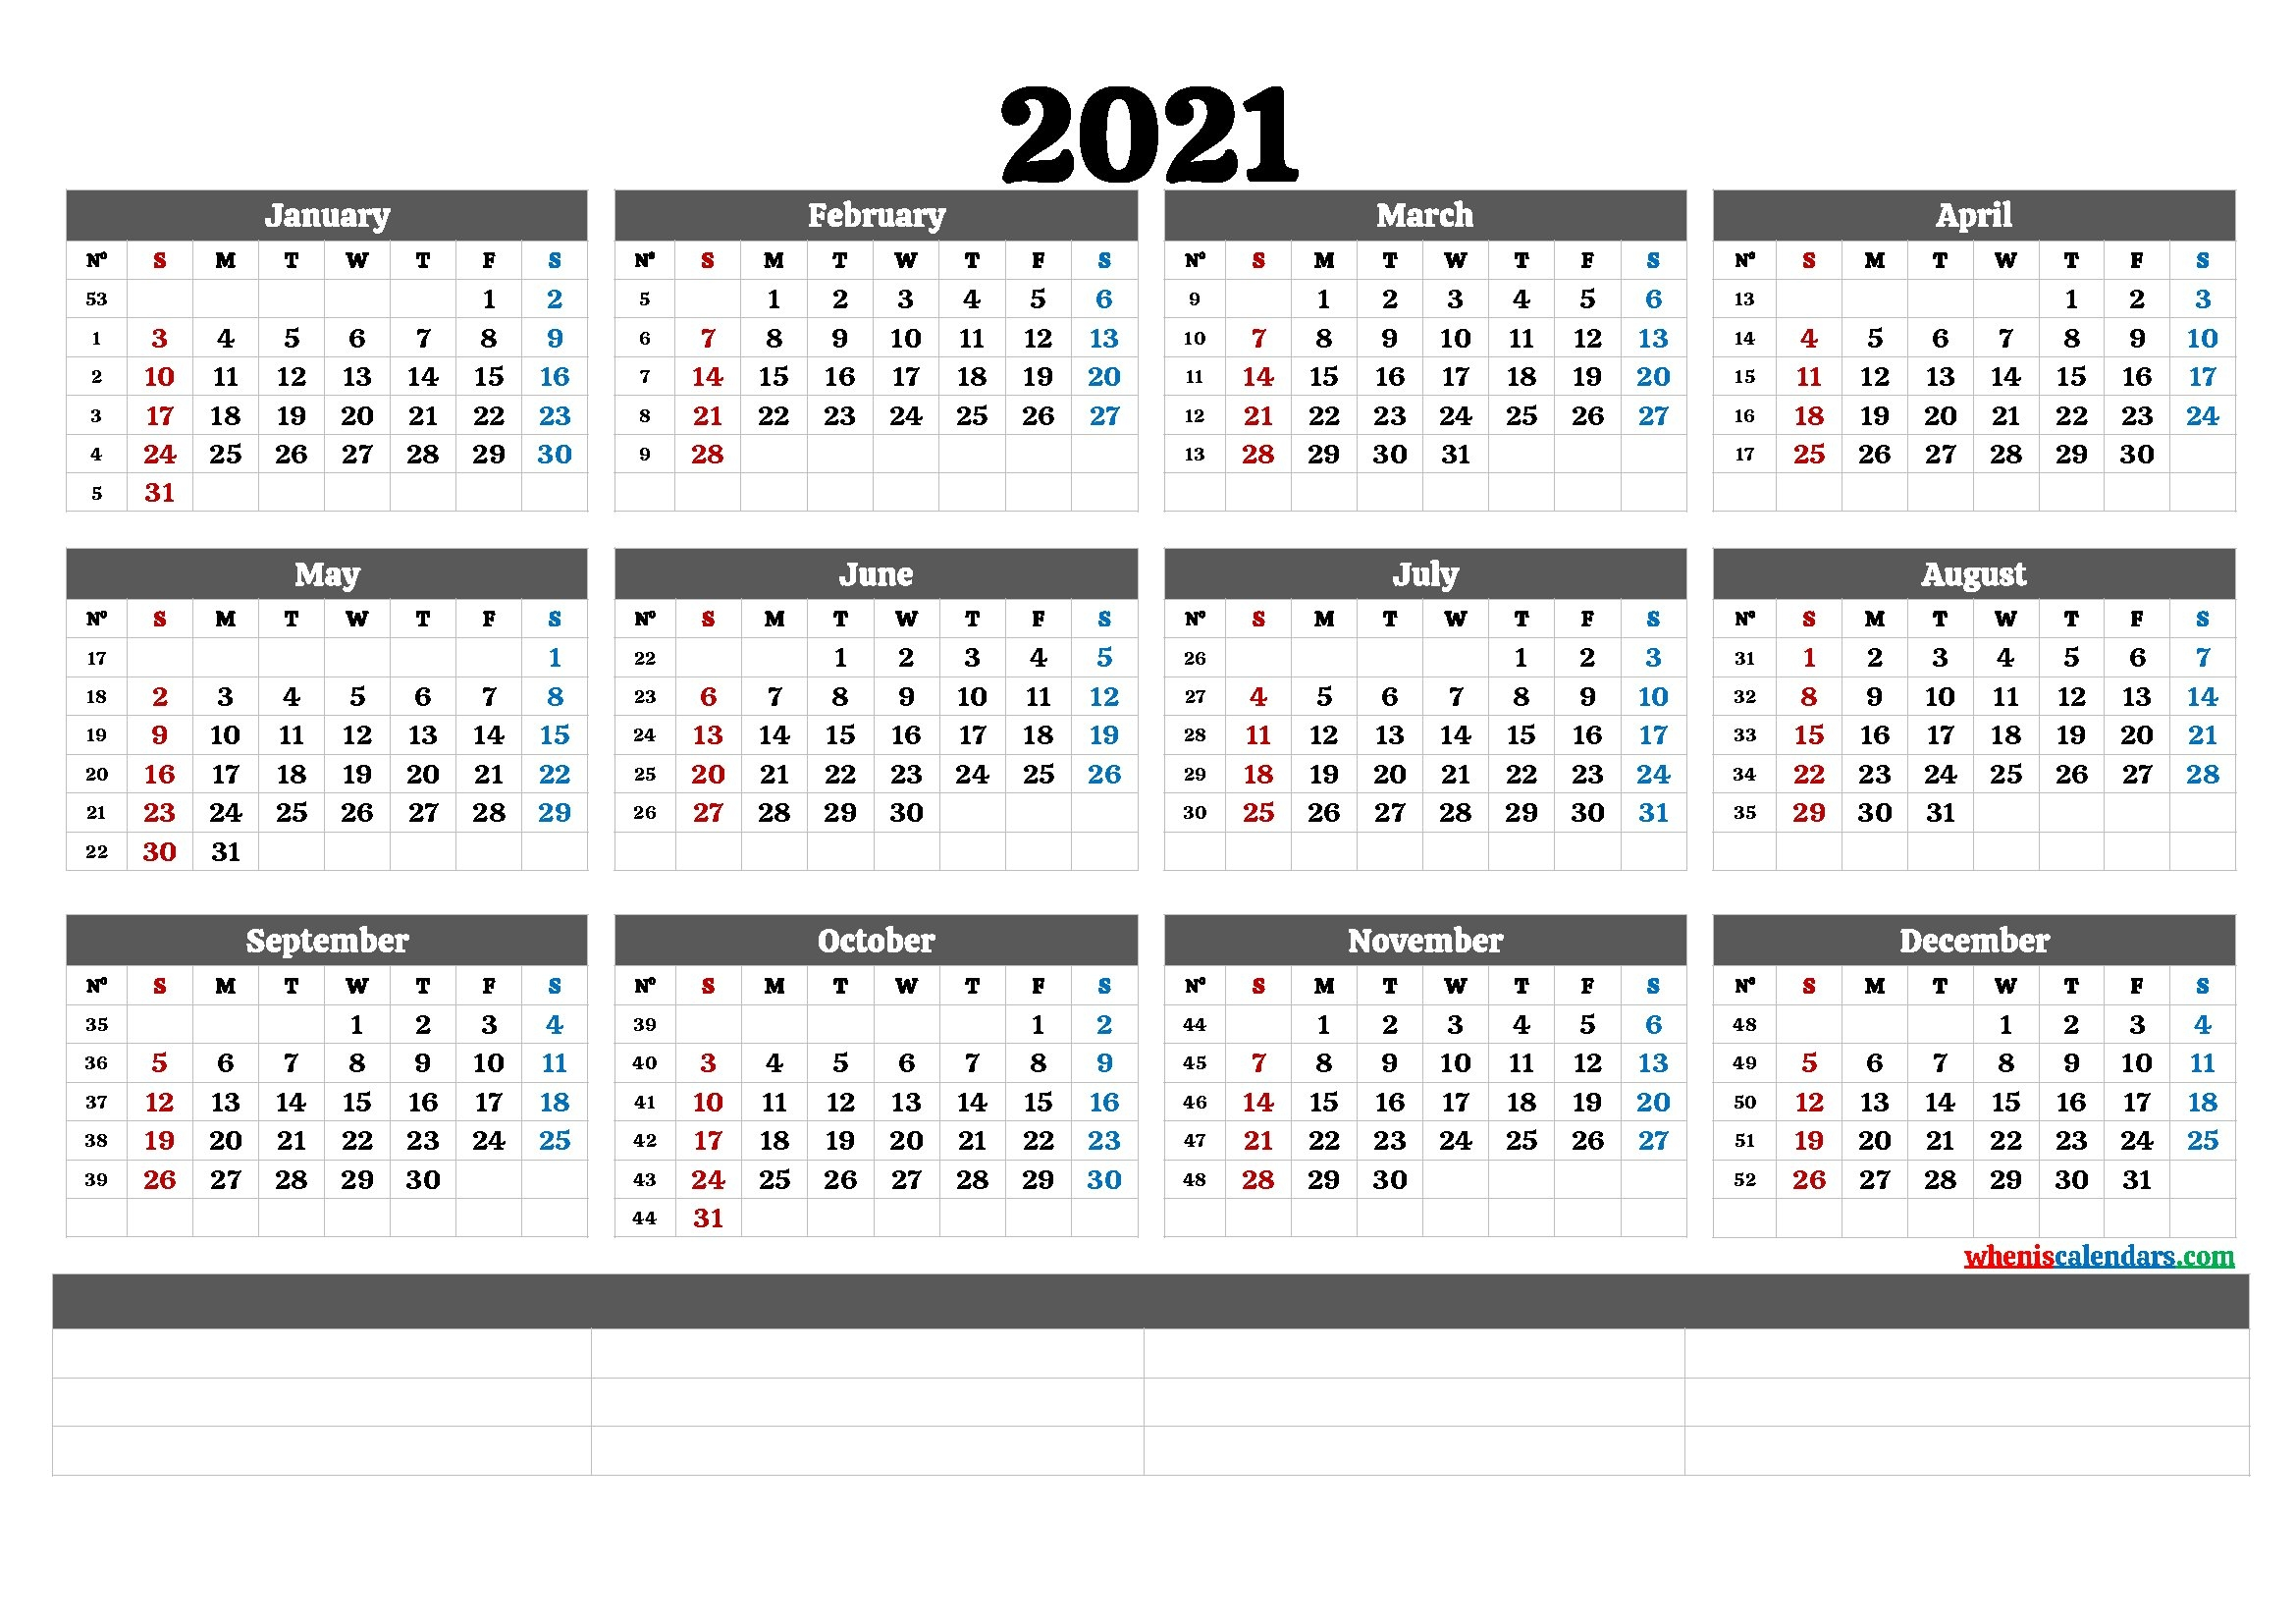 2021 Annual Calendar Printable (6 Templates)   Free Printable 2020 Monthly Calendar With Holidays throughout 2021 Calendar With Numbered Days Photo